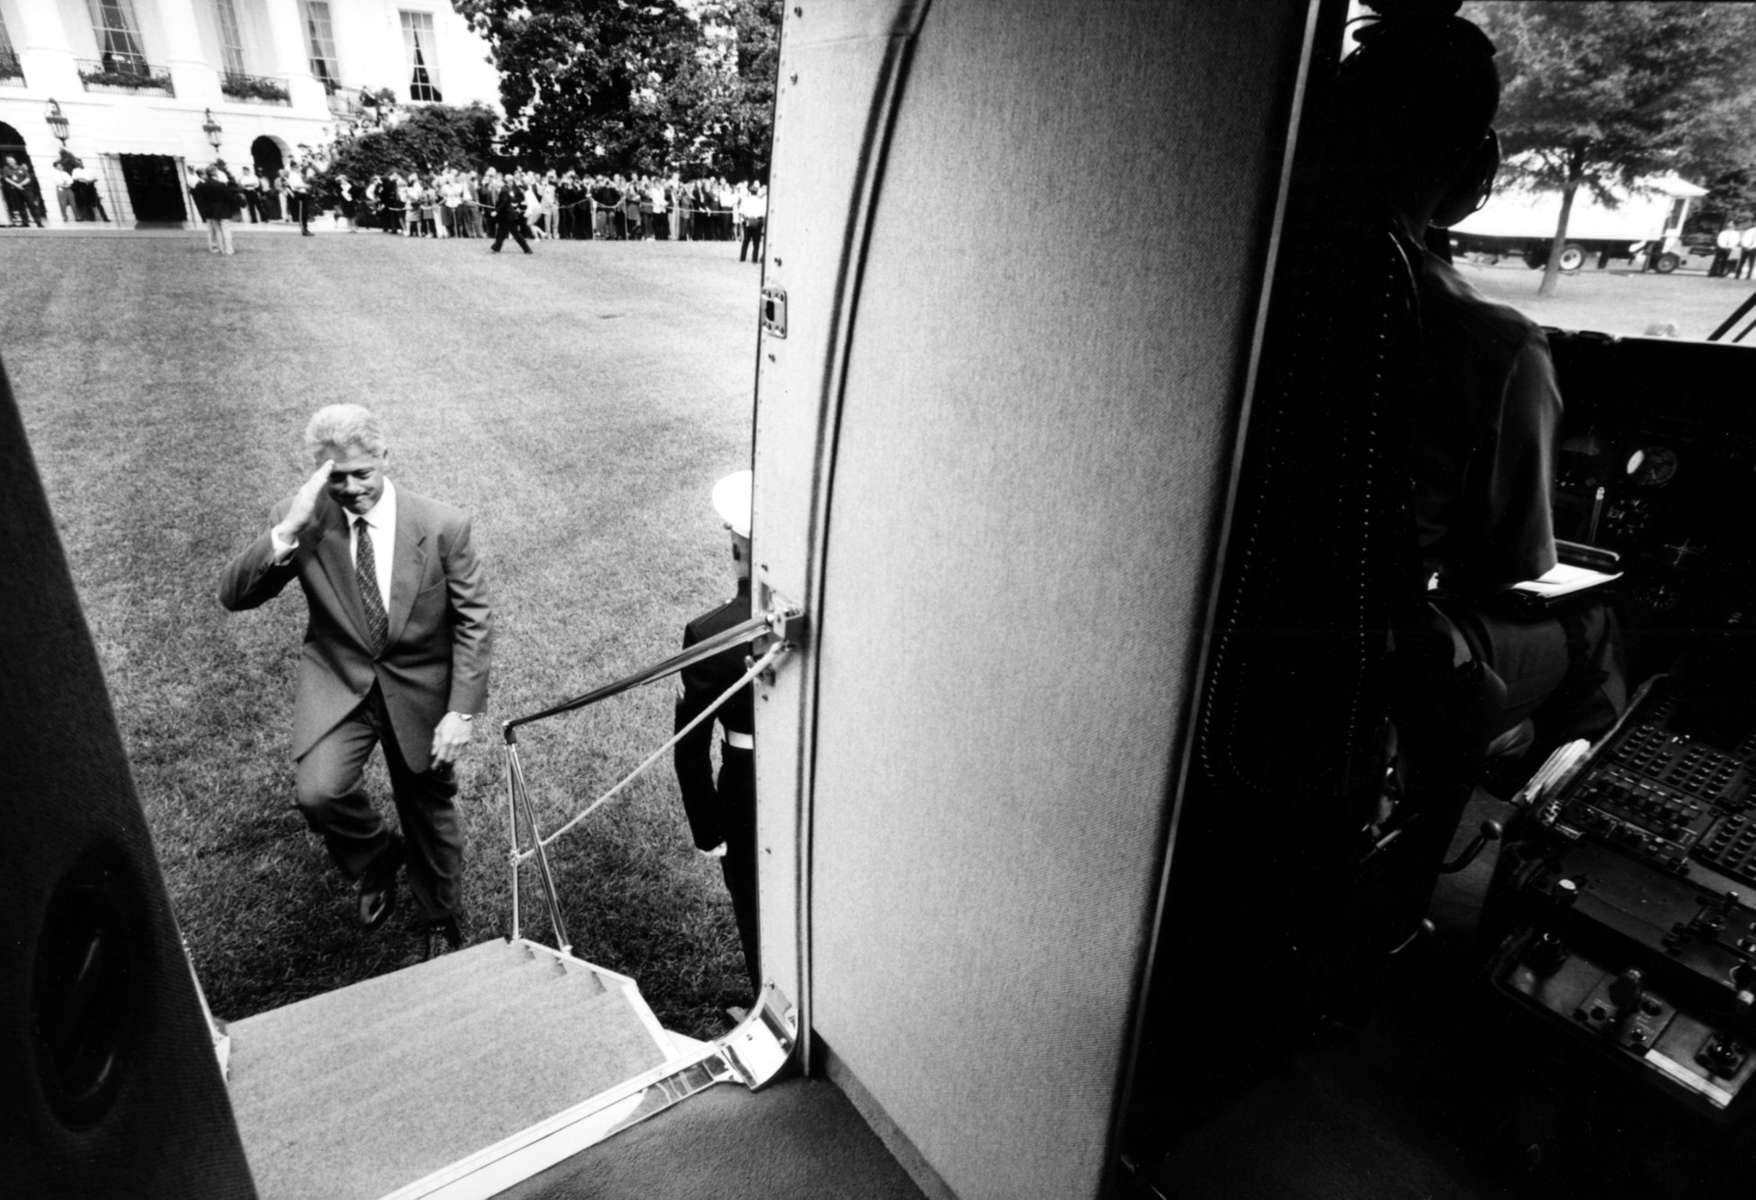 President Bill Clinton salutes as he boards the Marine One helicopter on the South Lawn of the White House. Photograph by Barbara Kinney, The White House